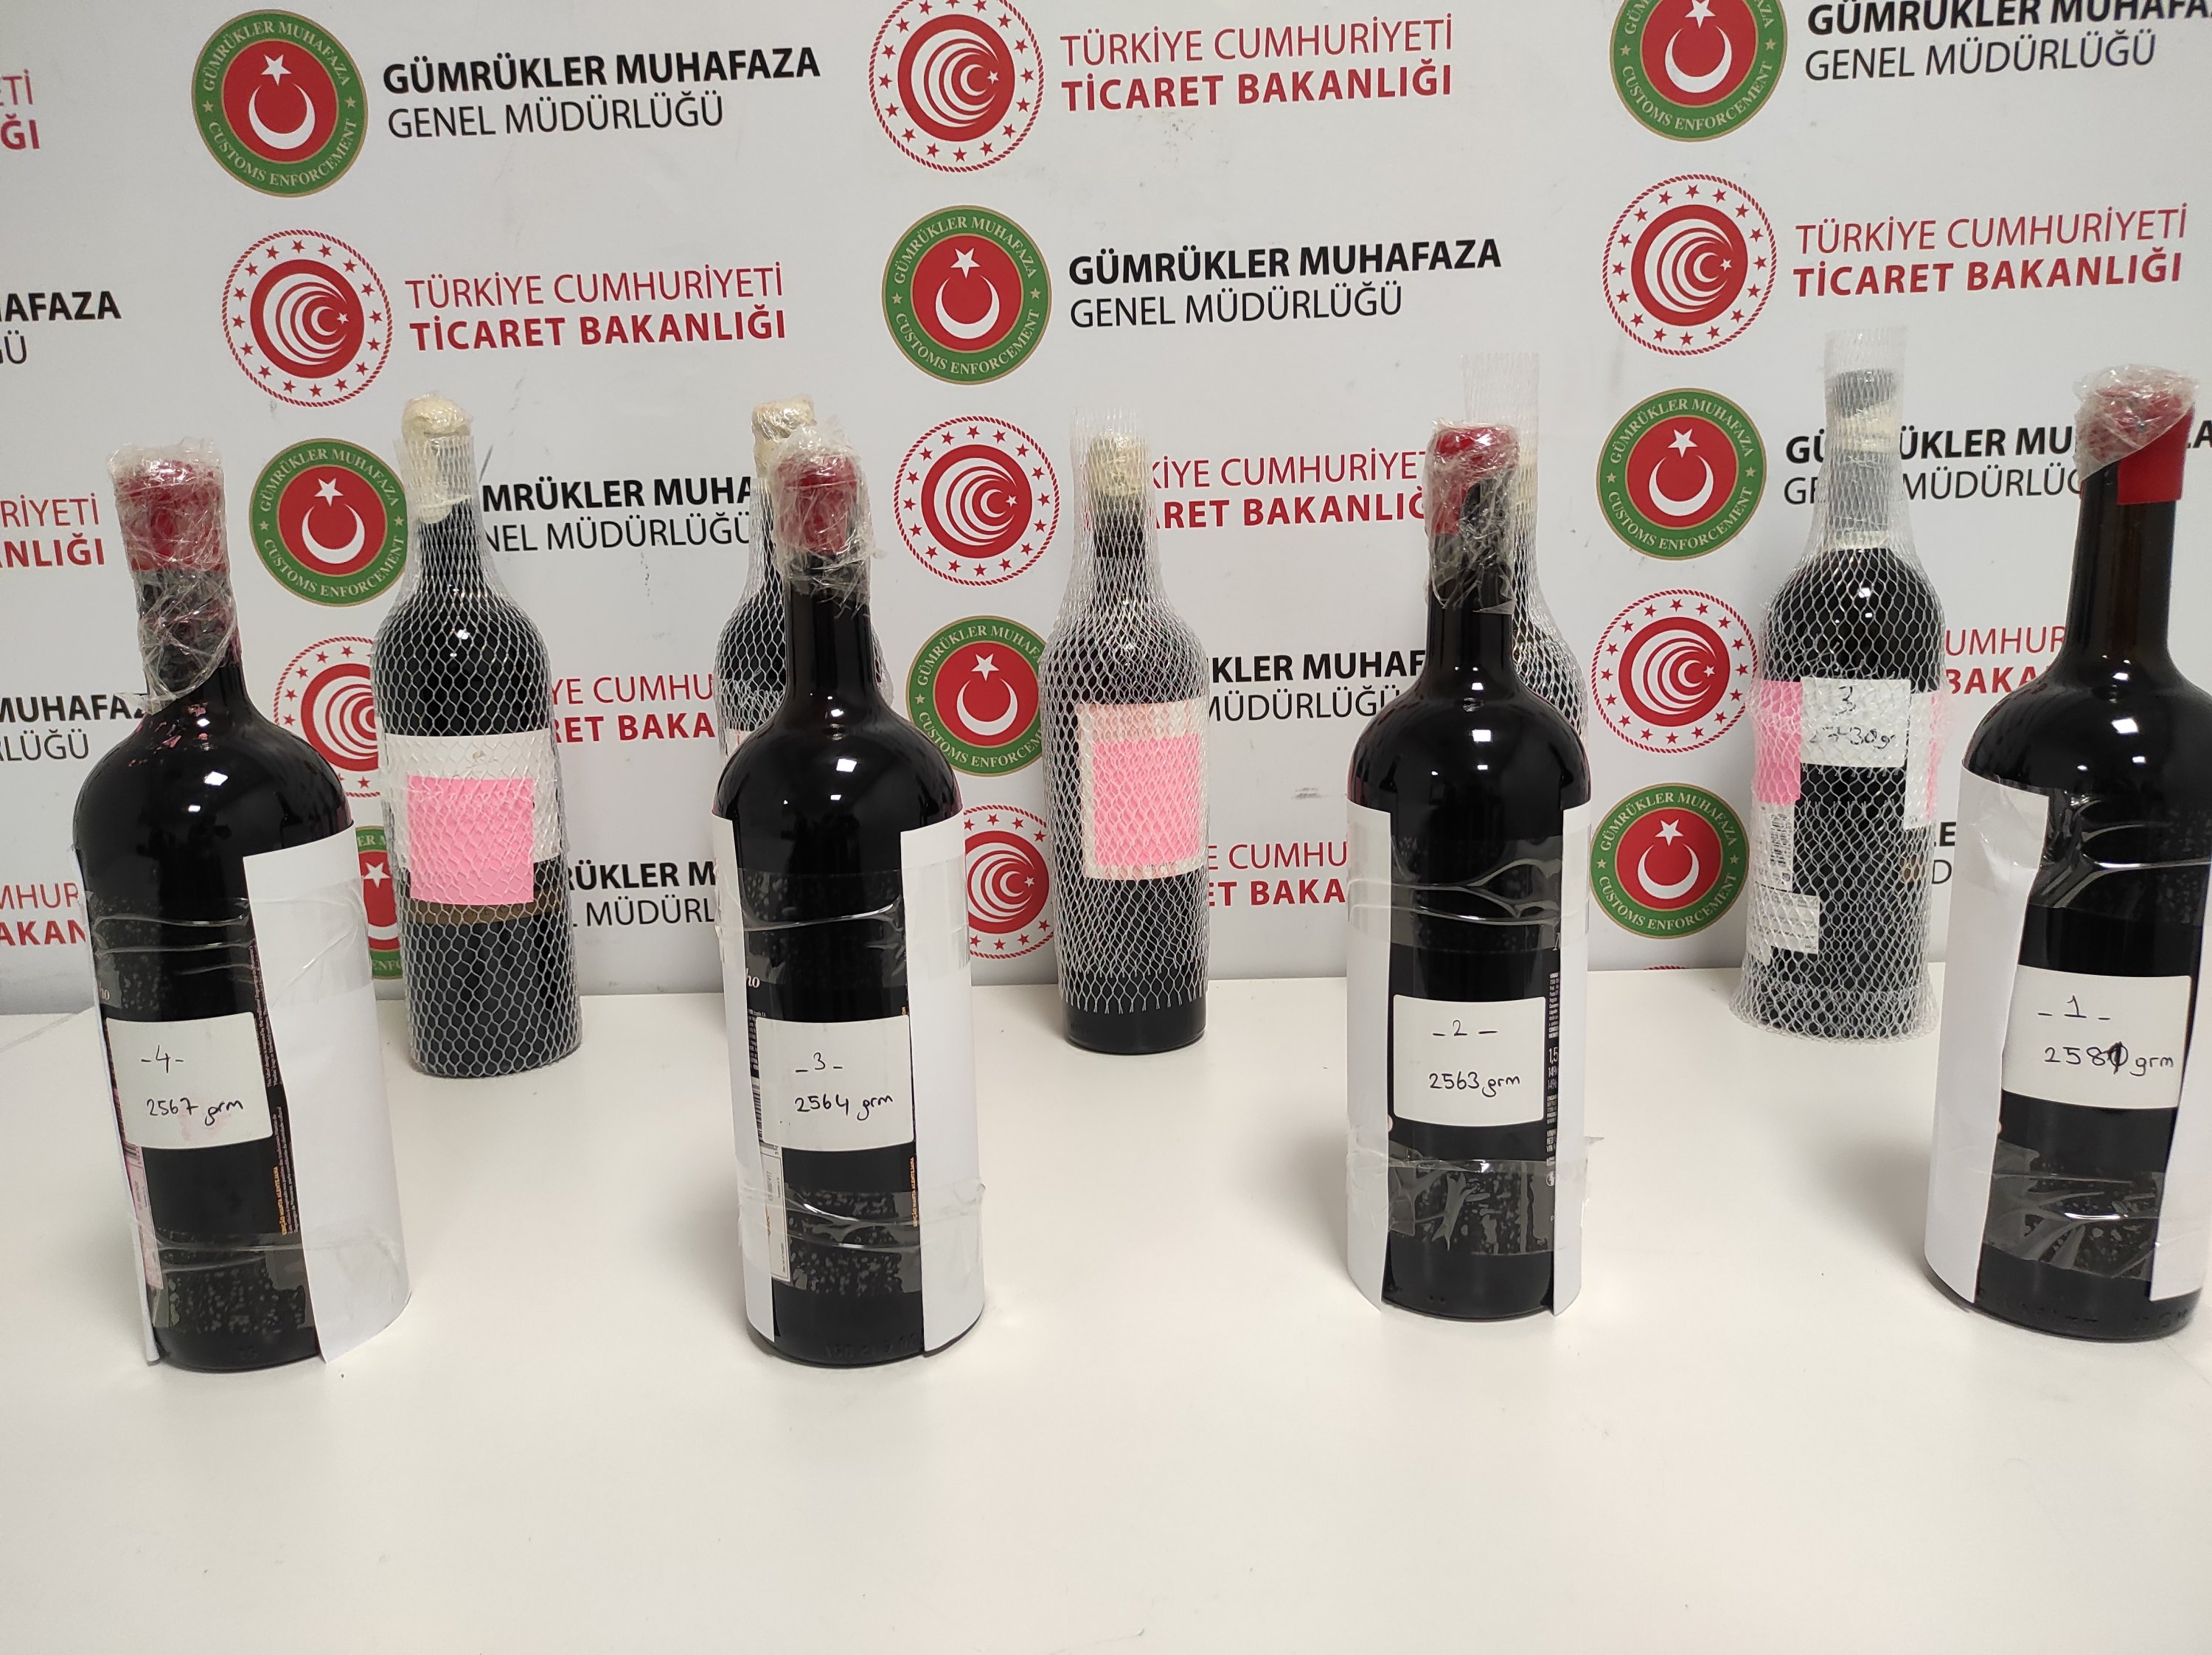 Drug smugglers turn to 'liquid' cocaine to thwart detection in Turkey